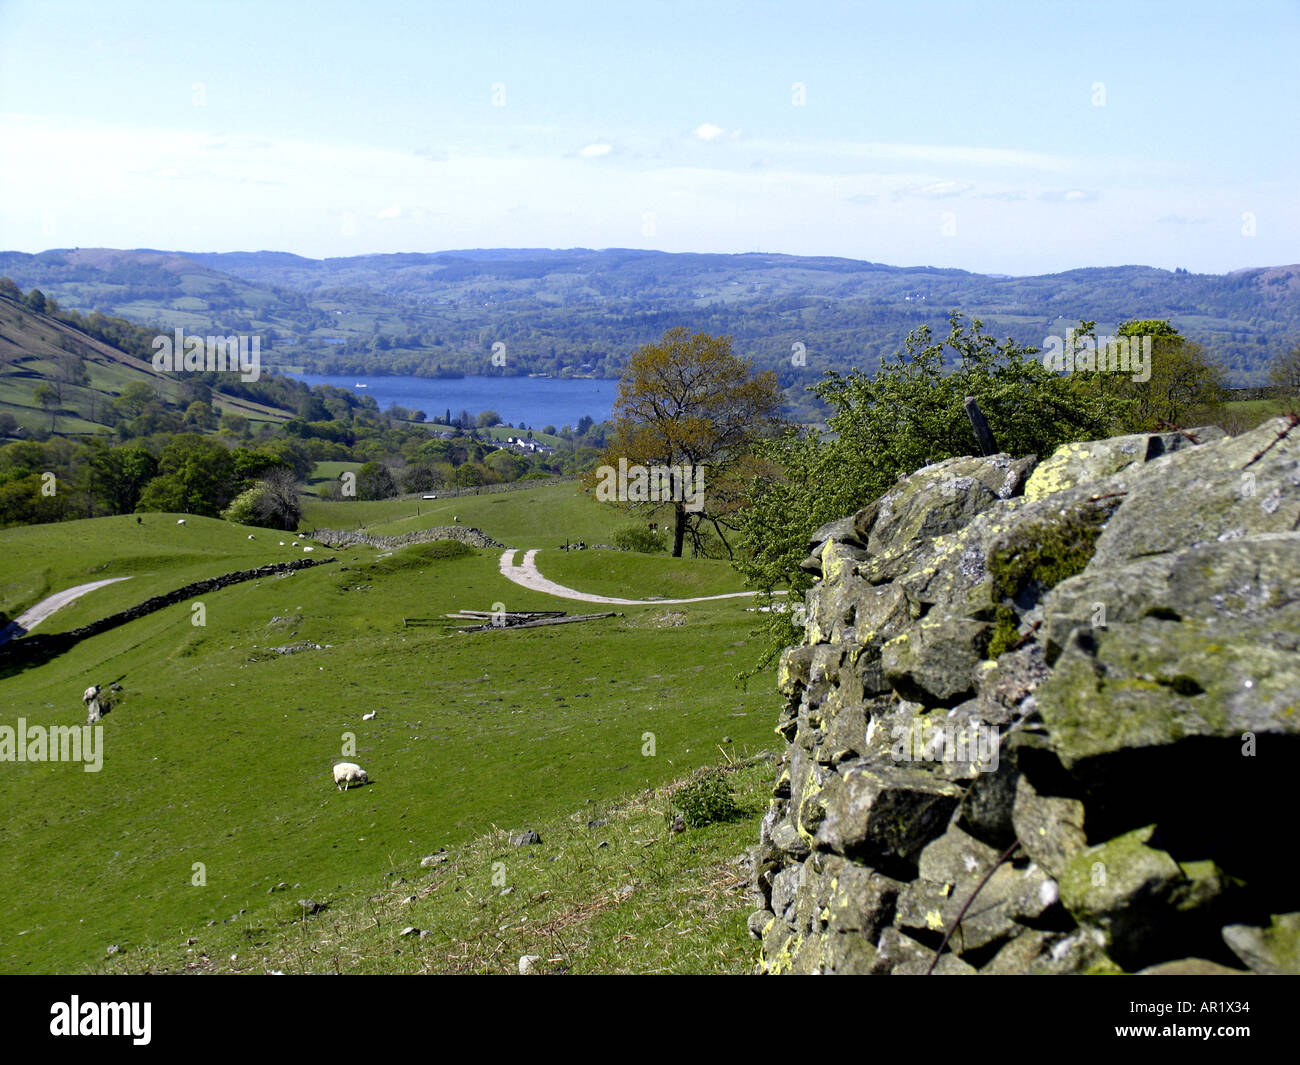 Old Wagoners route Lake District National Park Cumbria UK Stock Photo